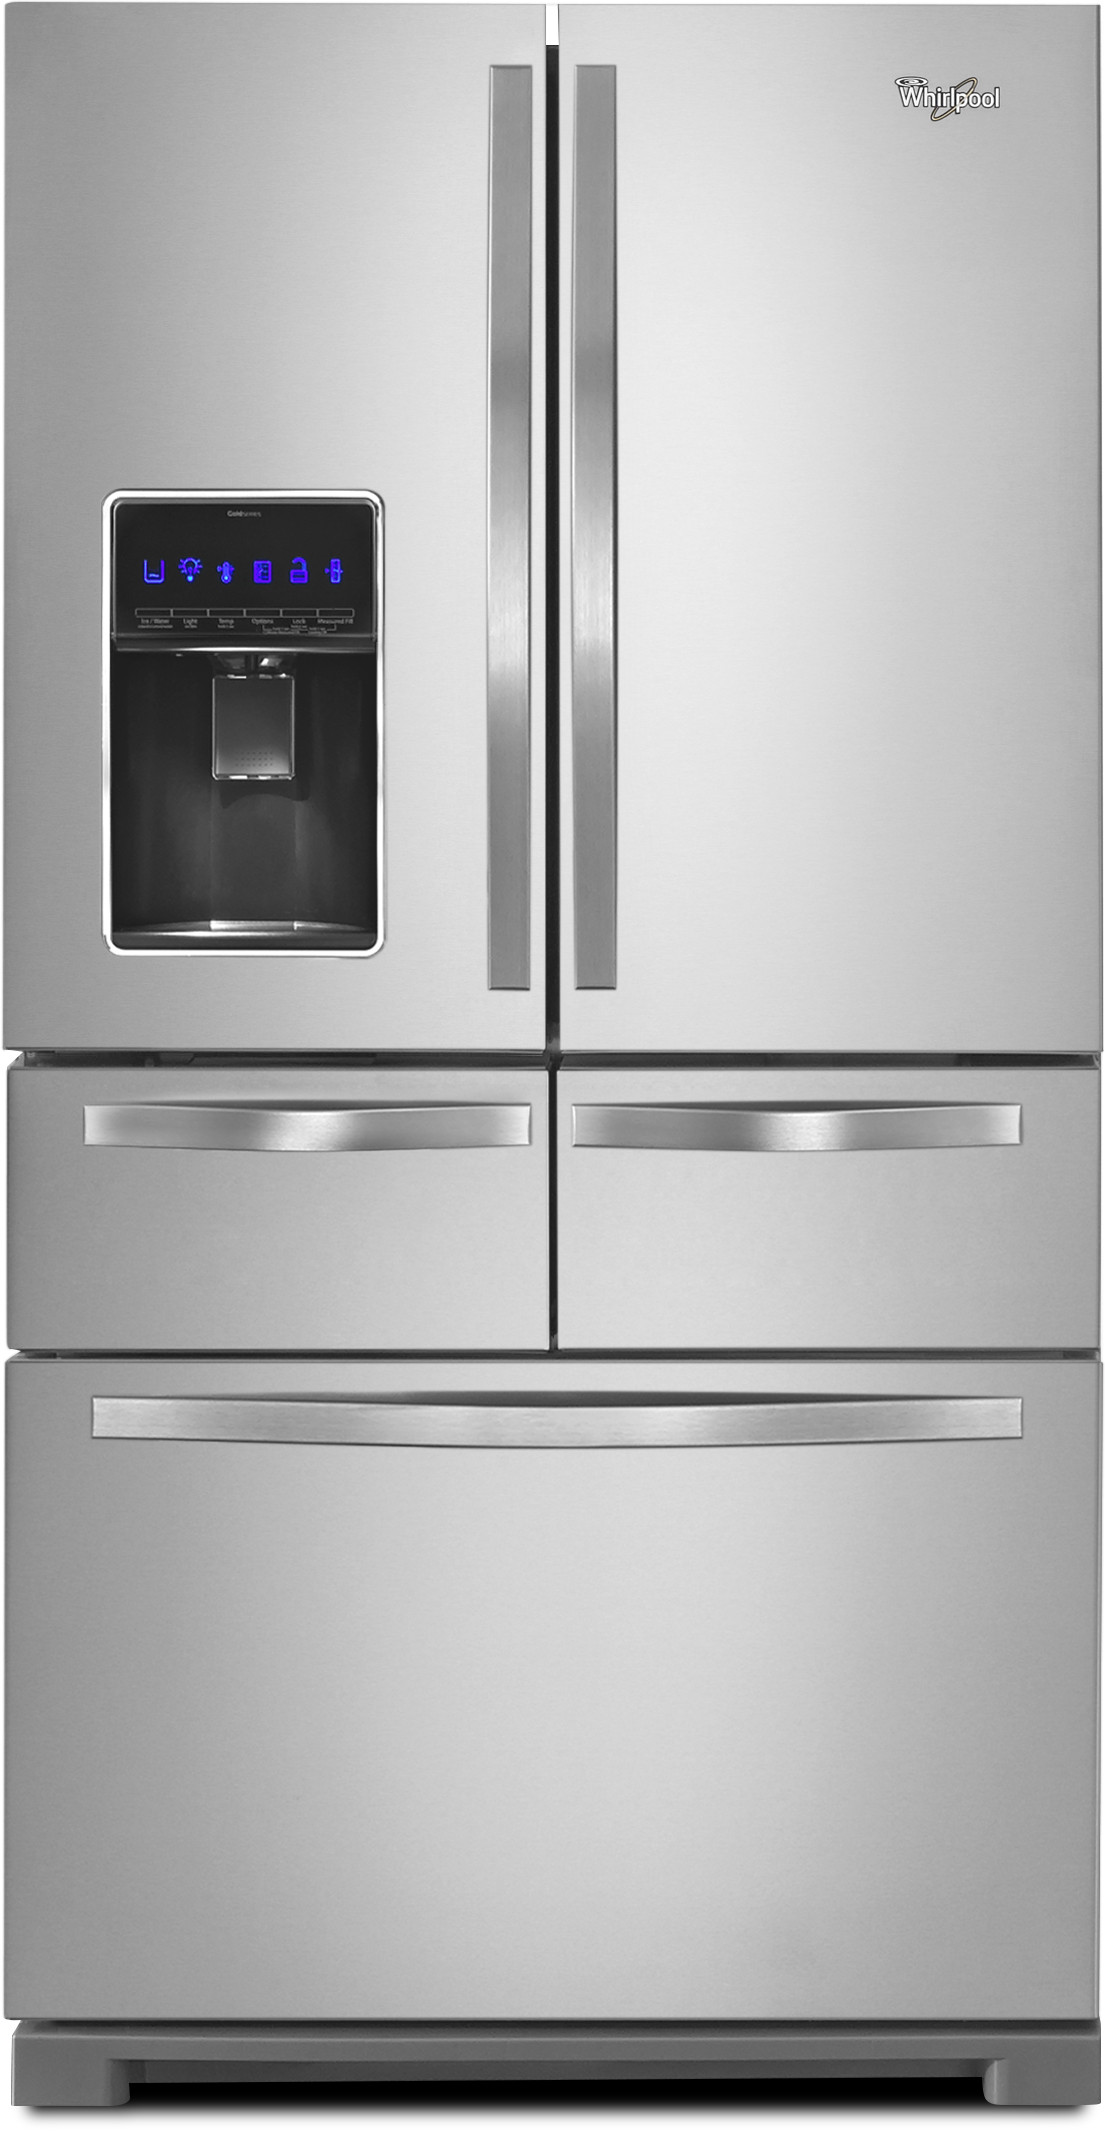 Whirlpool Refrigerators - Buy a Whirlpool Refrigerator Today at AJ ...